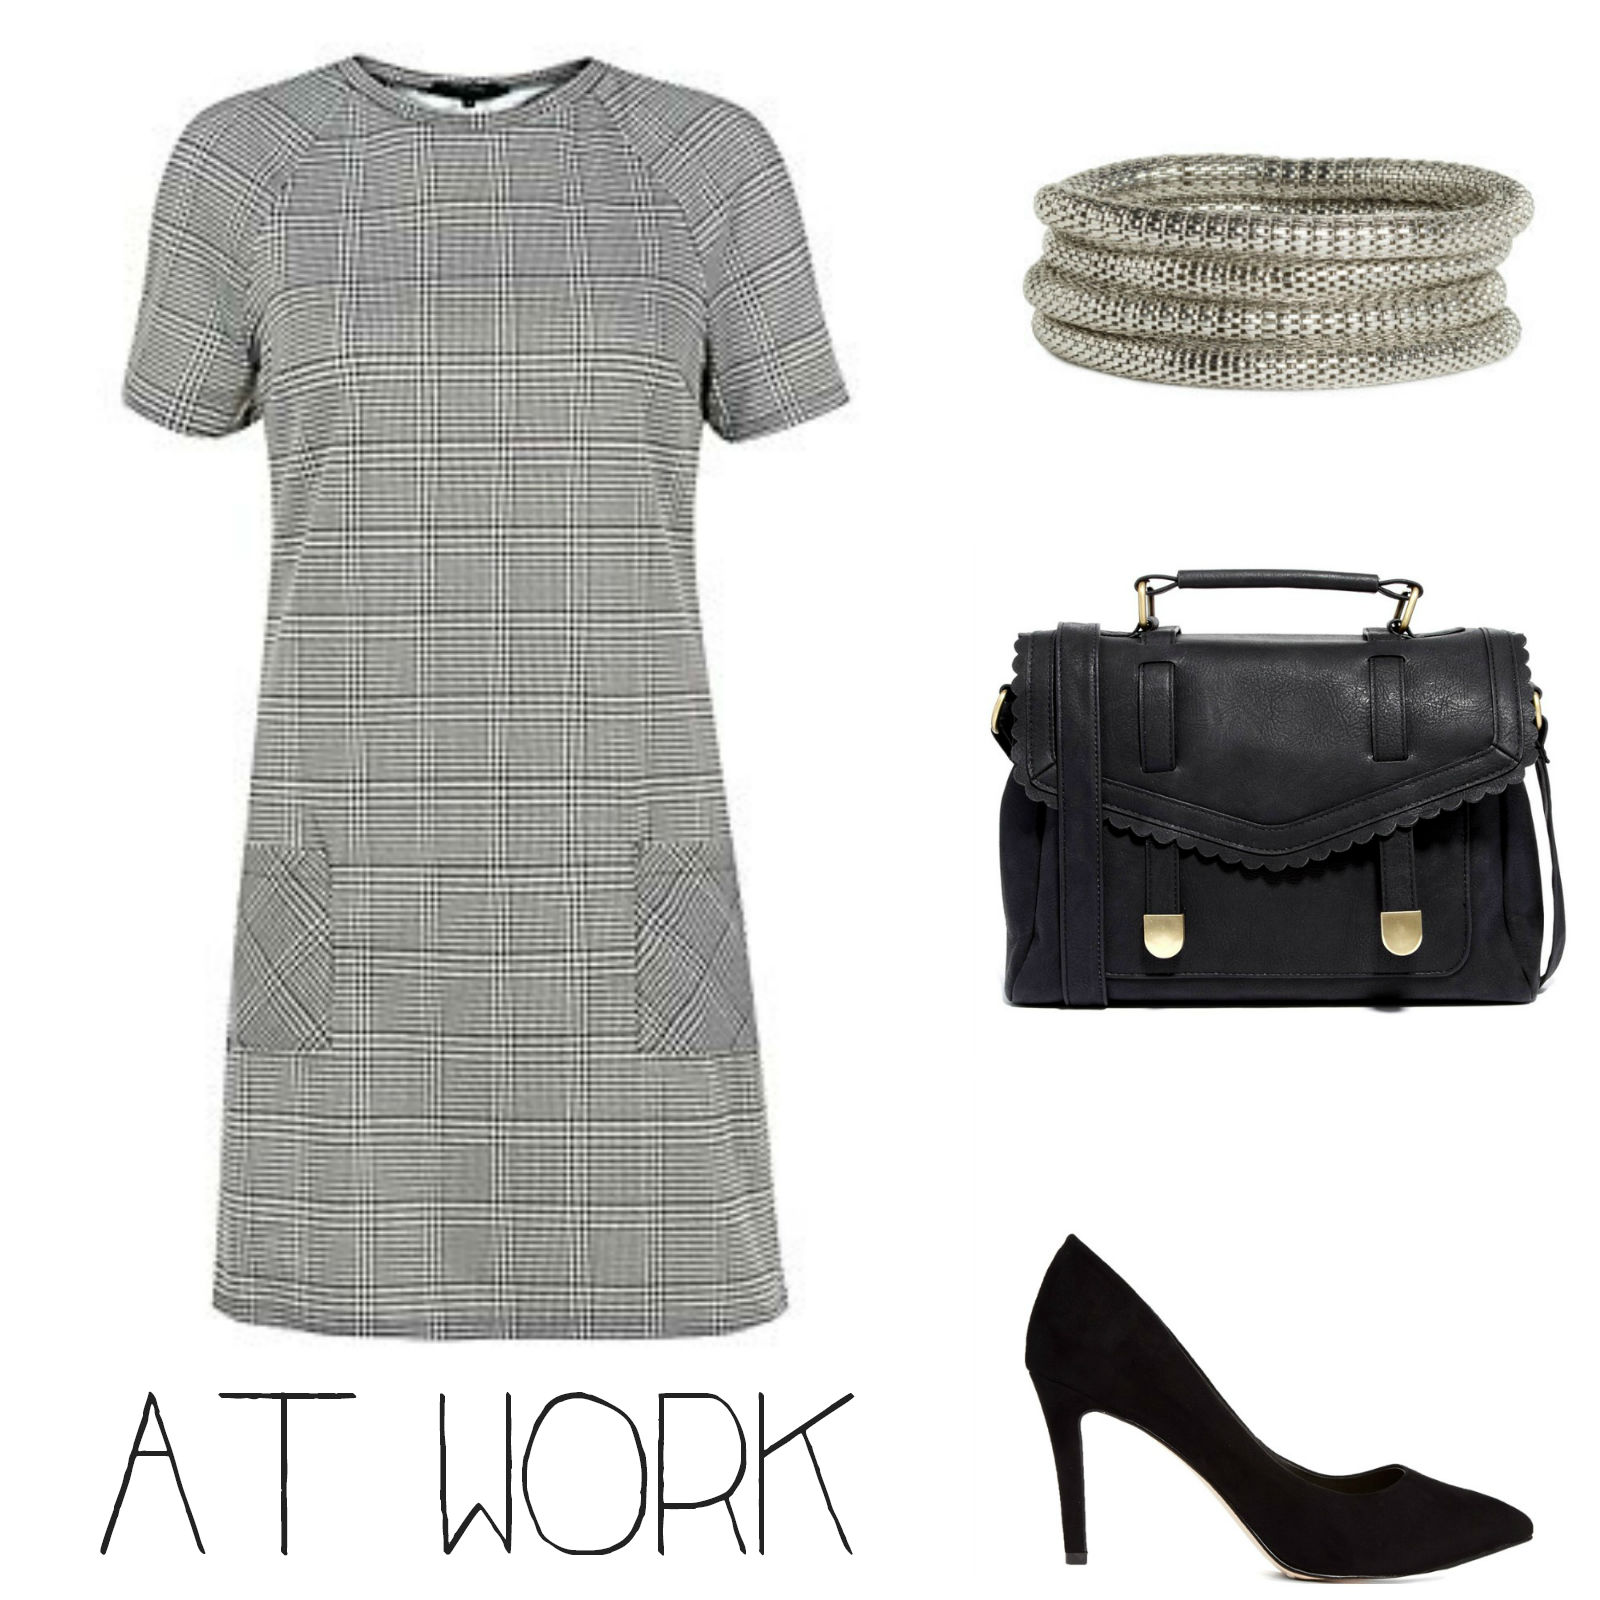 Work outfit with grey shift dress